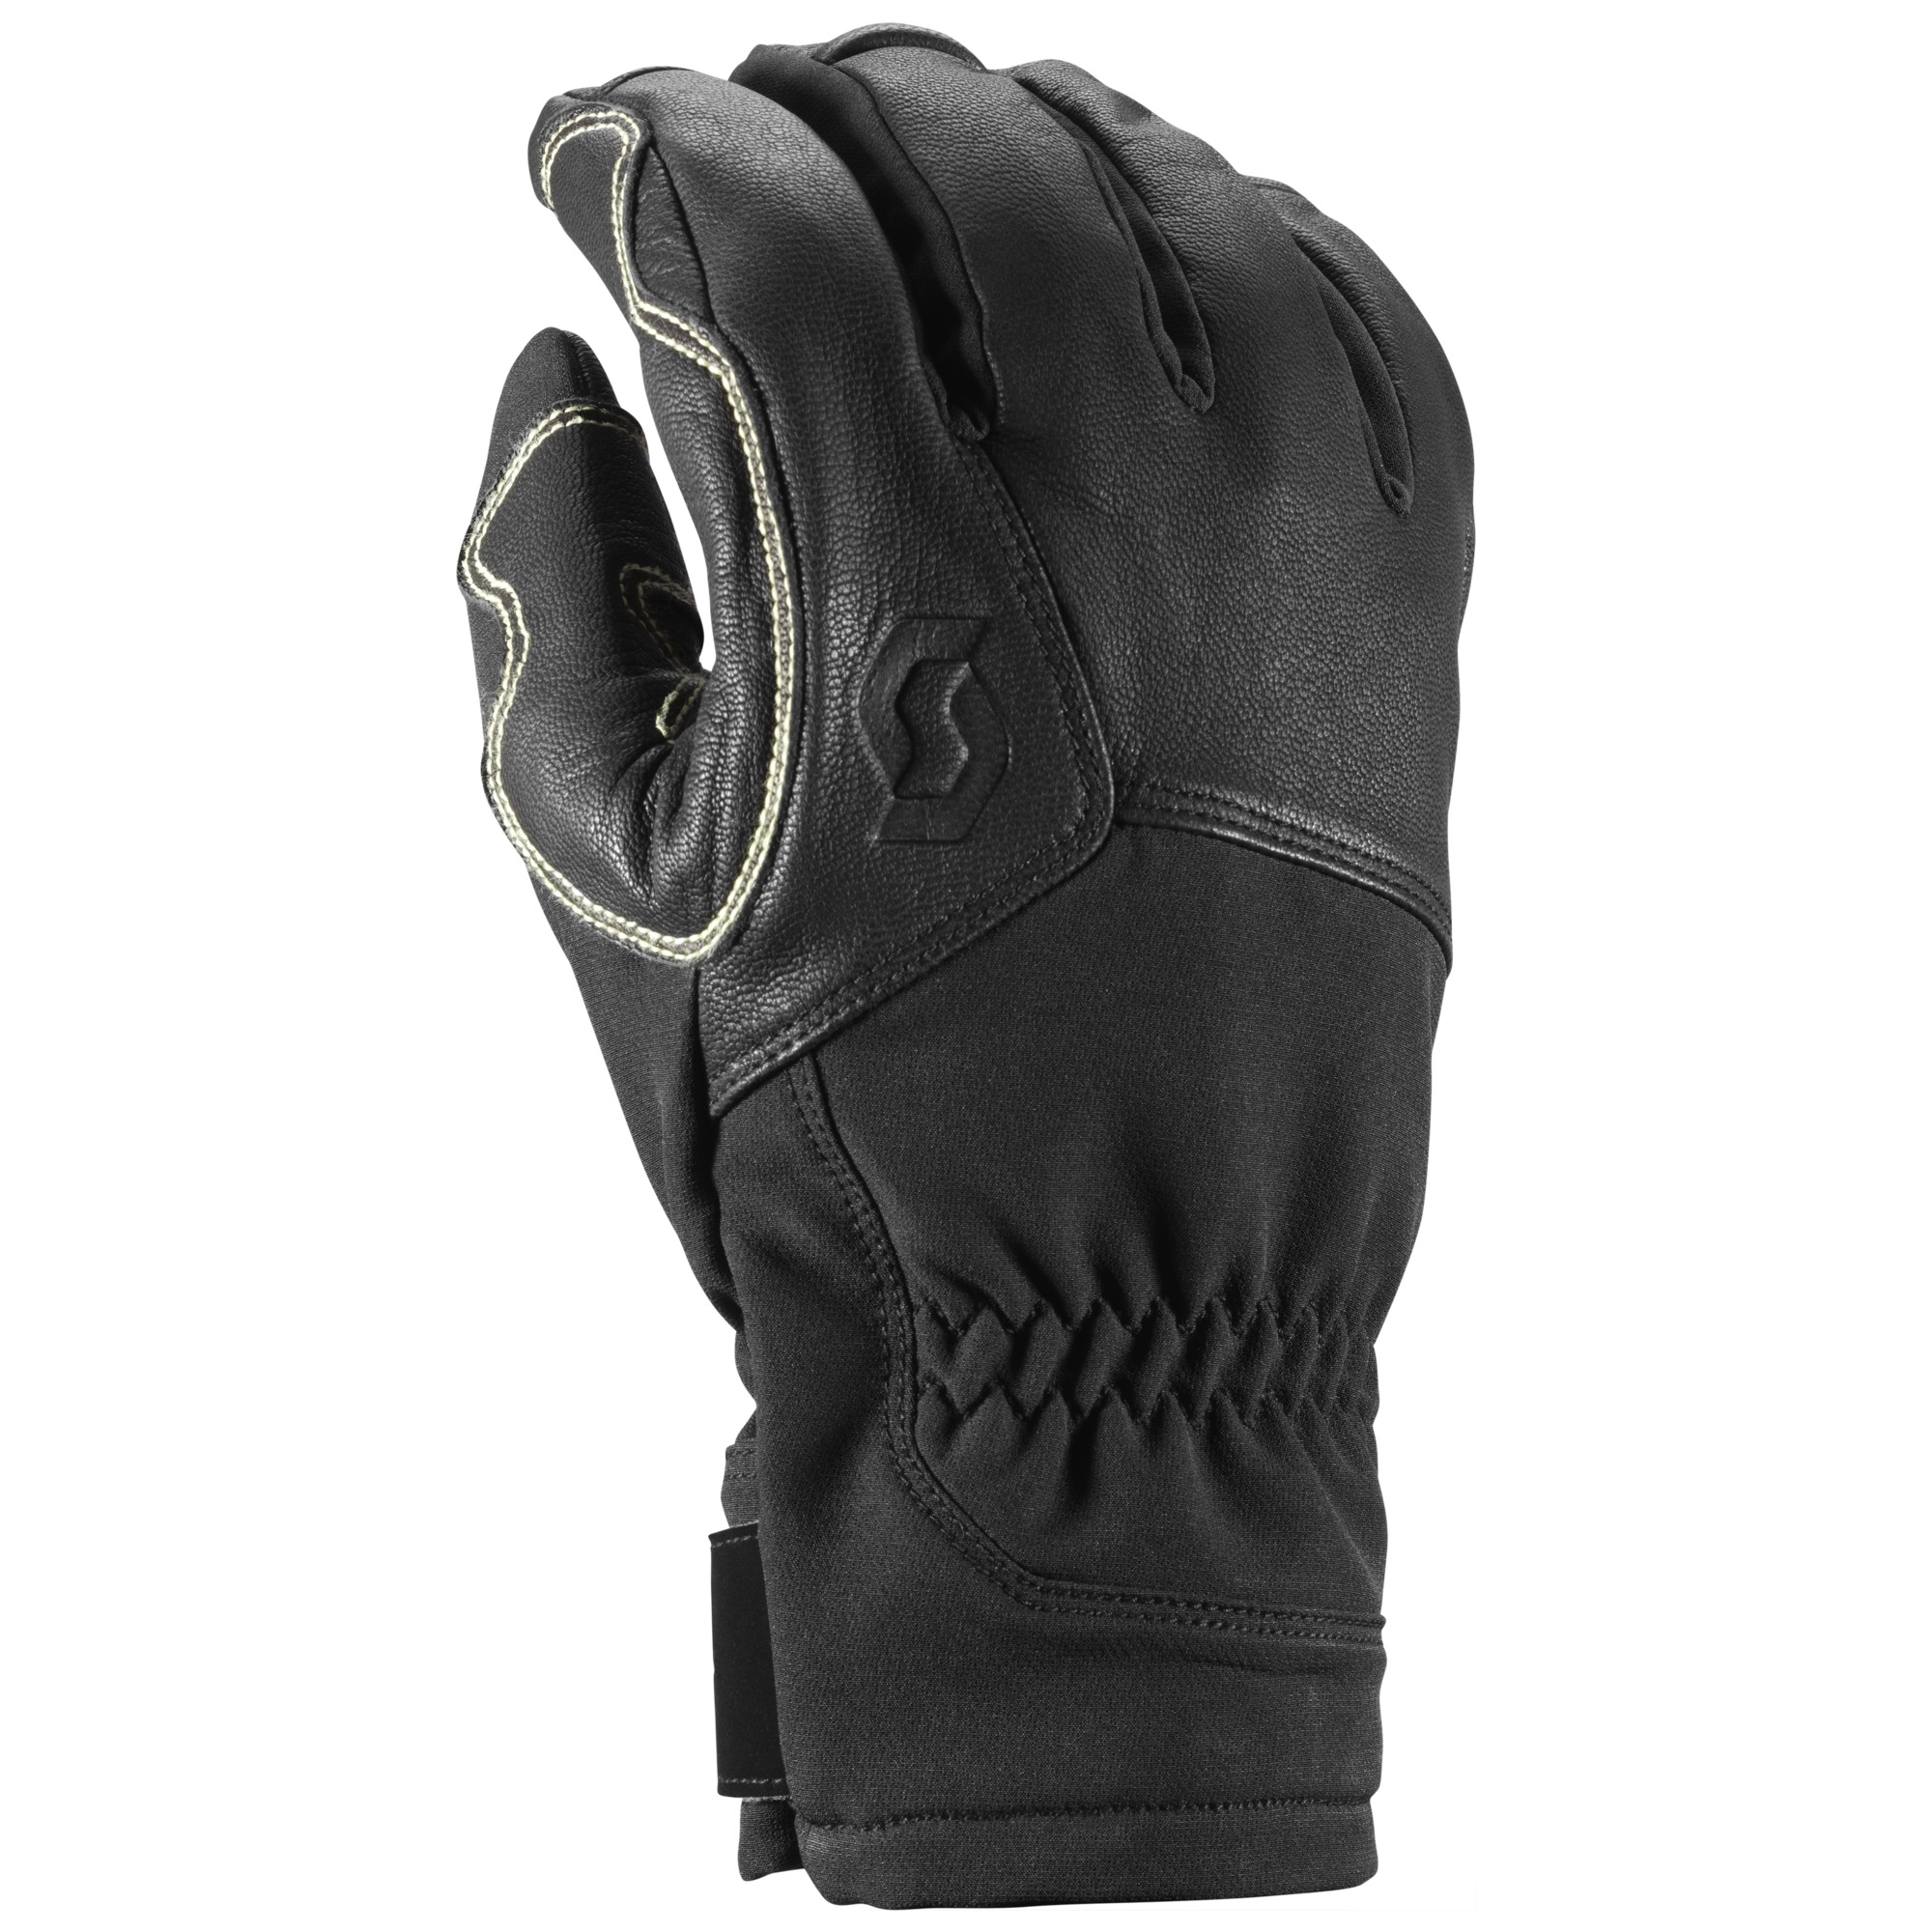 GUANTI DA NEVE SCOTT EXPLORAIR TECH GLOVE 244442 black.jpg